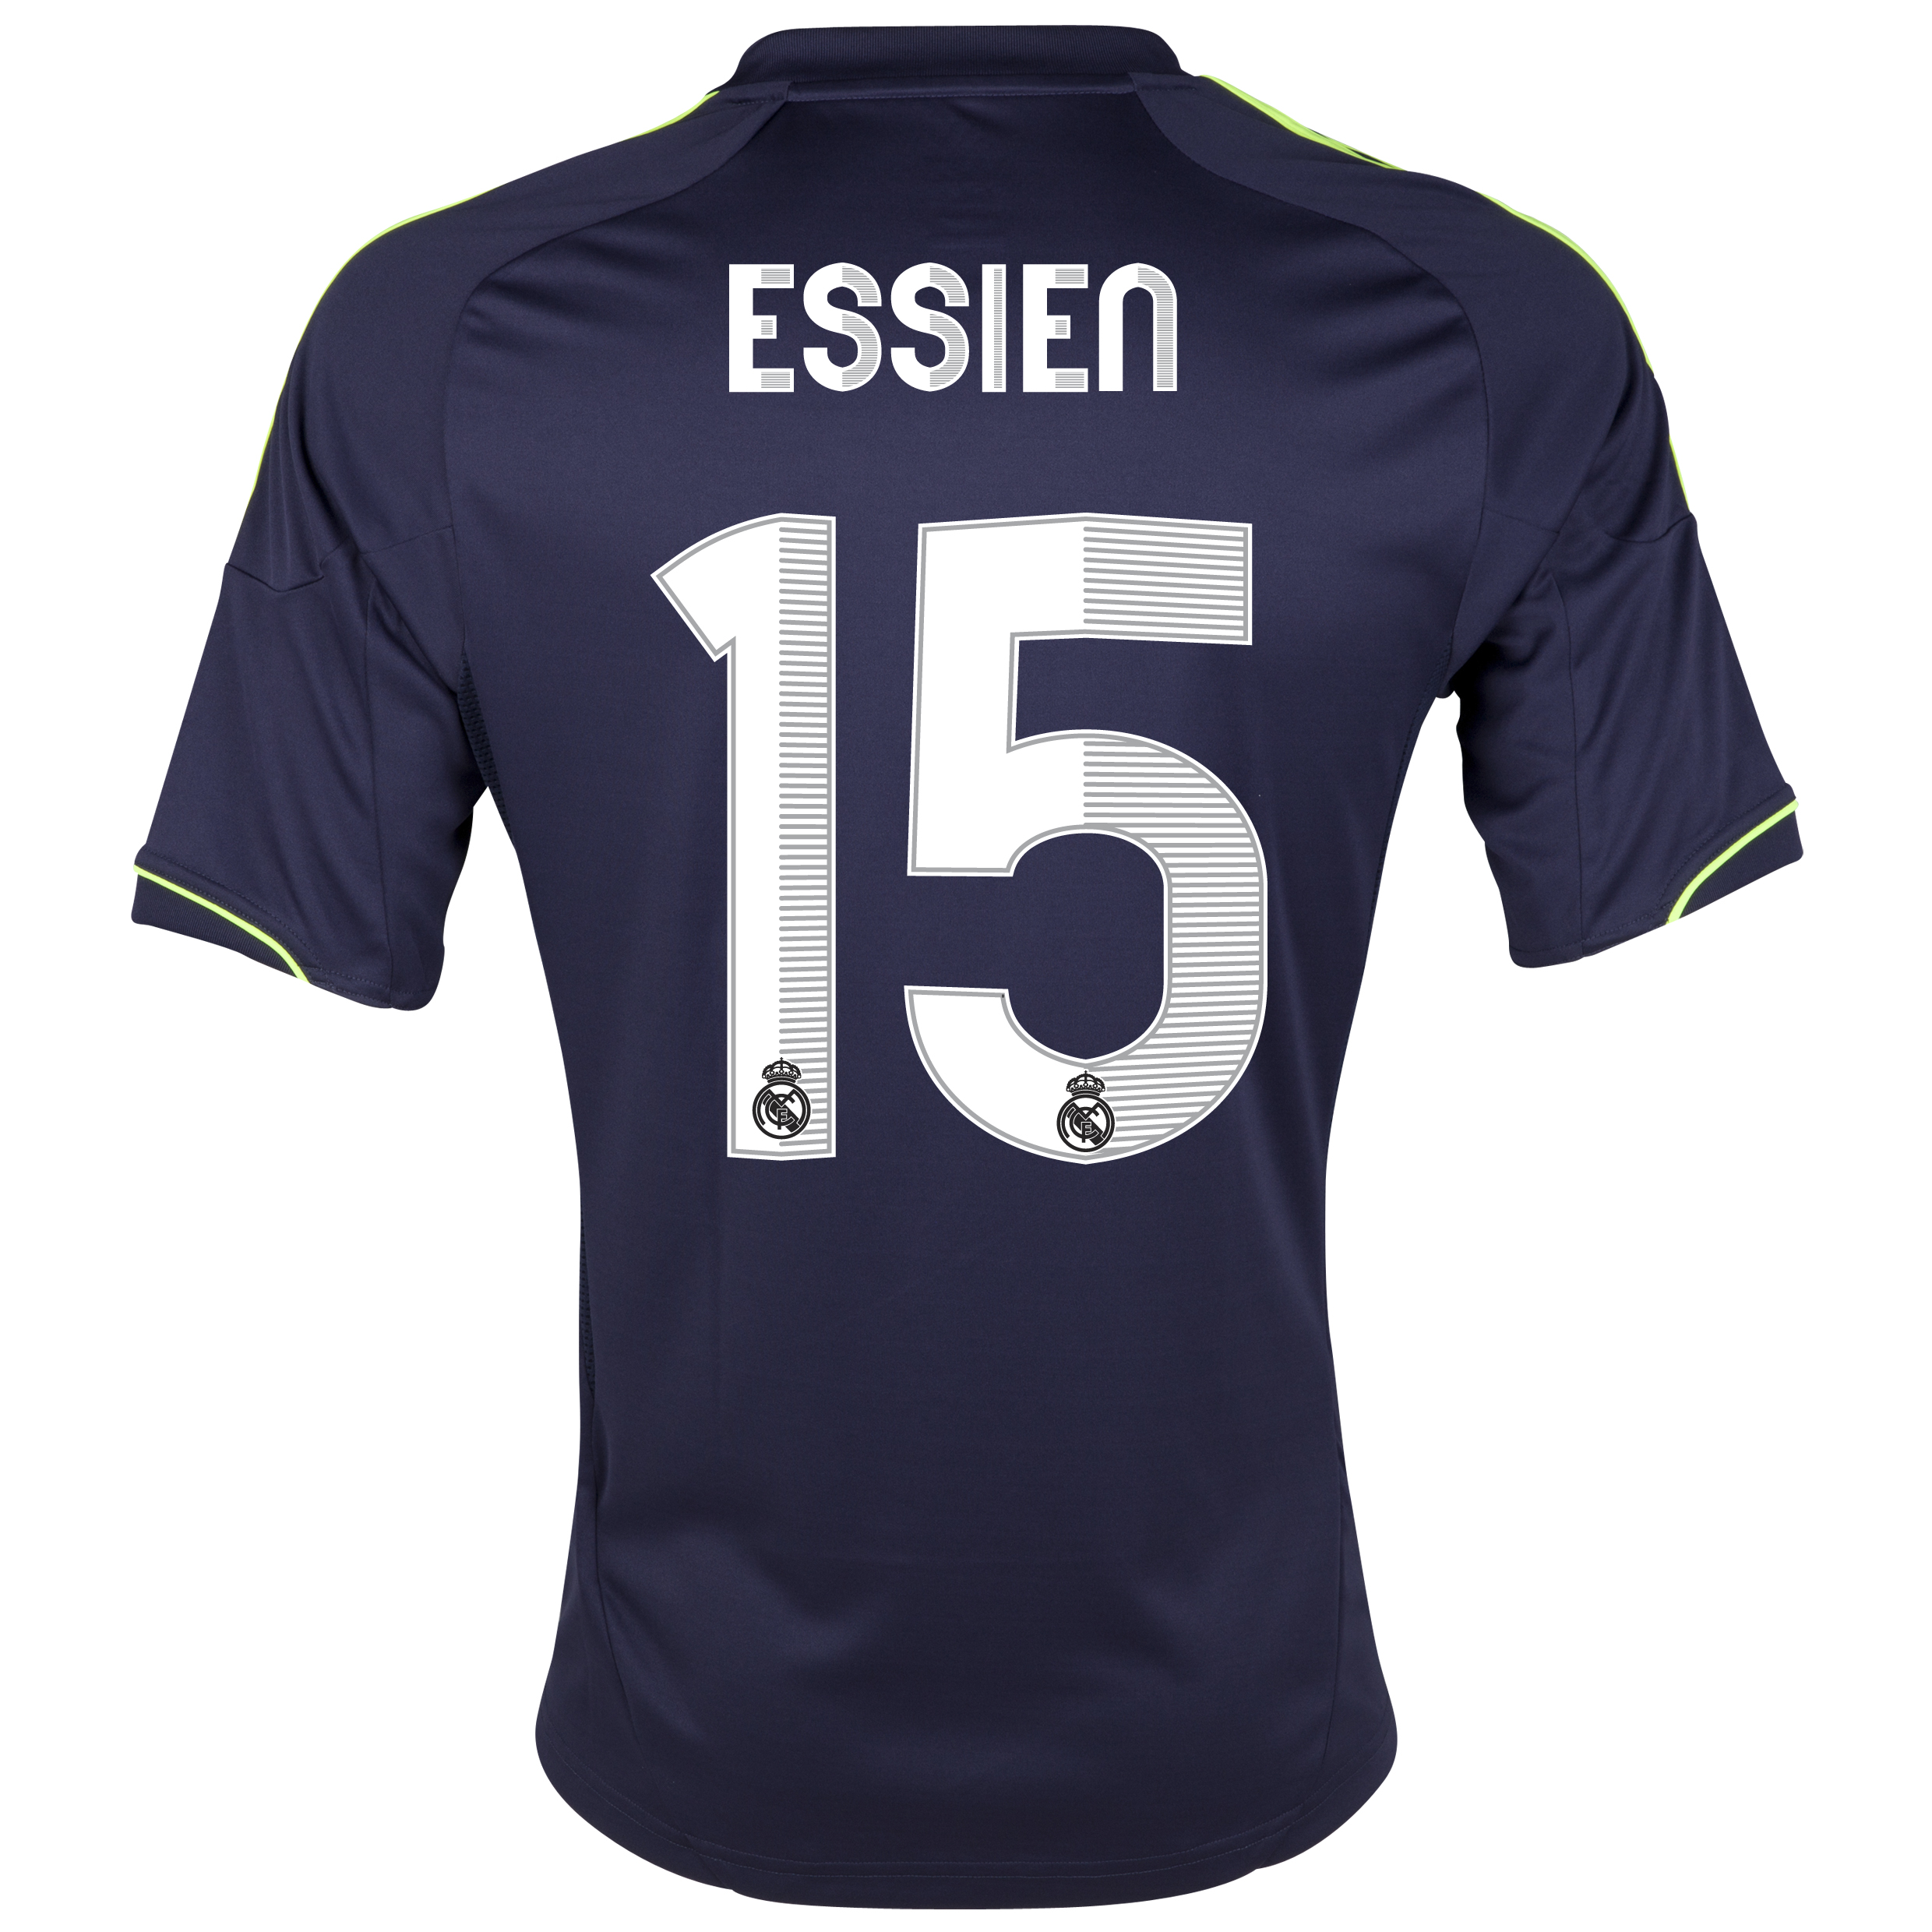 Real Madrid Away Shirt 2012/13 with Essien 15 printing